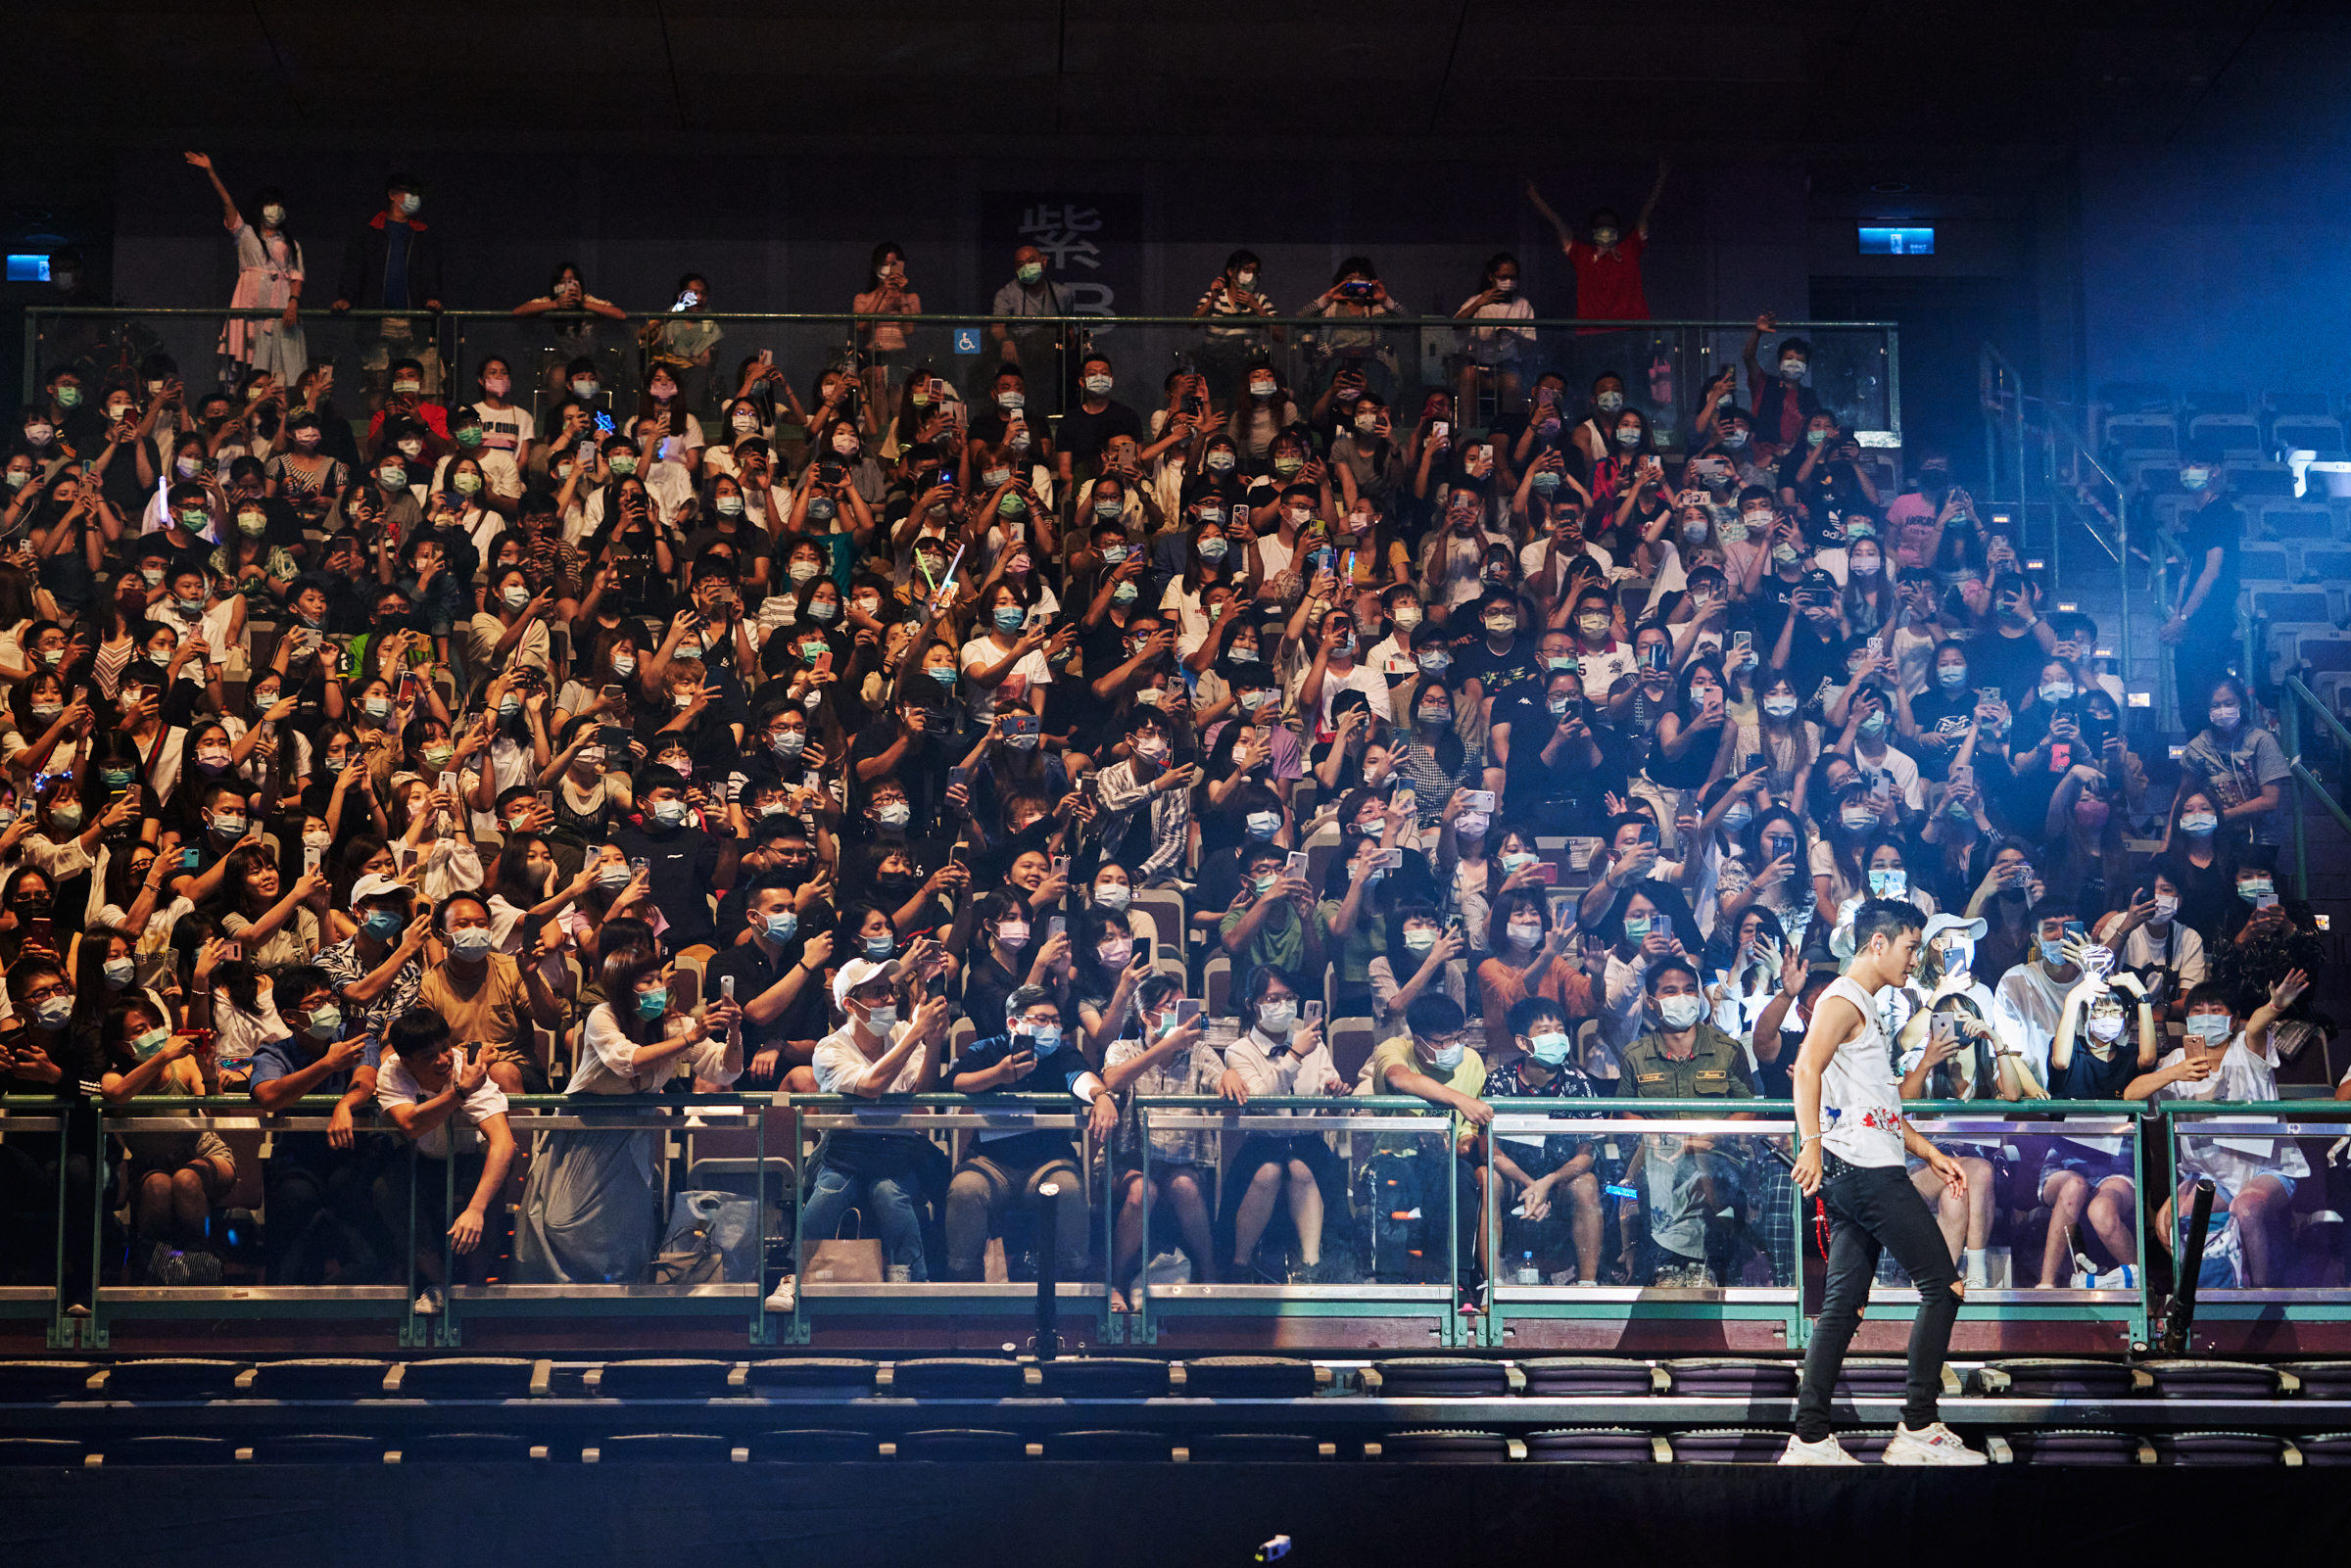 Eric Chou walks on an extended stage that brought him close to fans sitting on the second level of the Taipei Arena on Aug. 8.